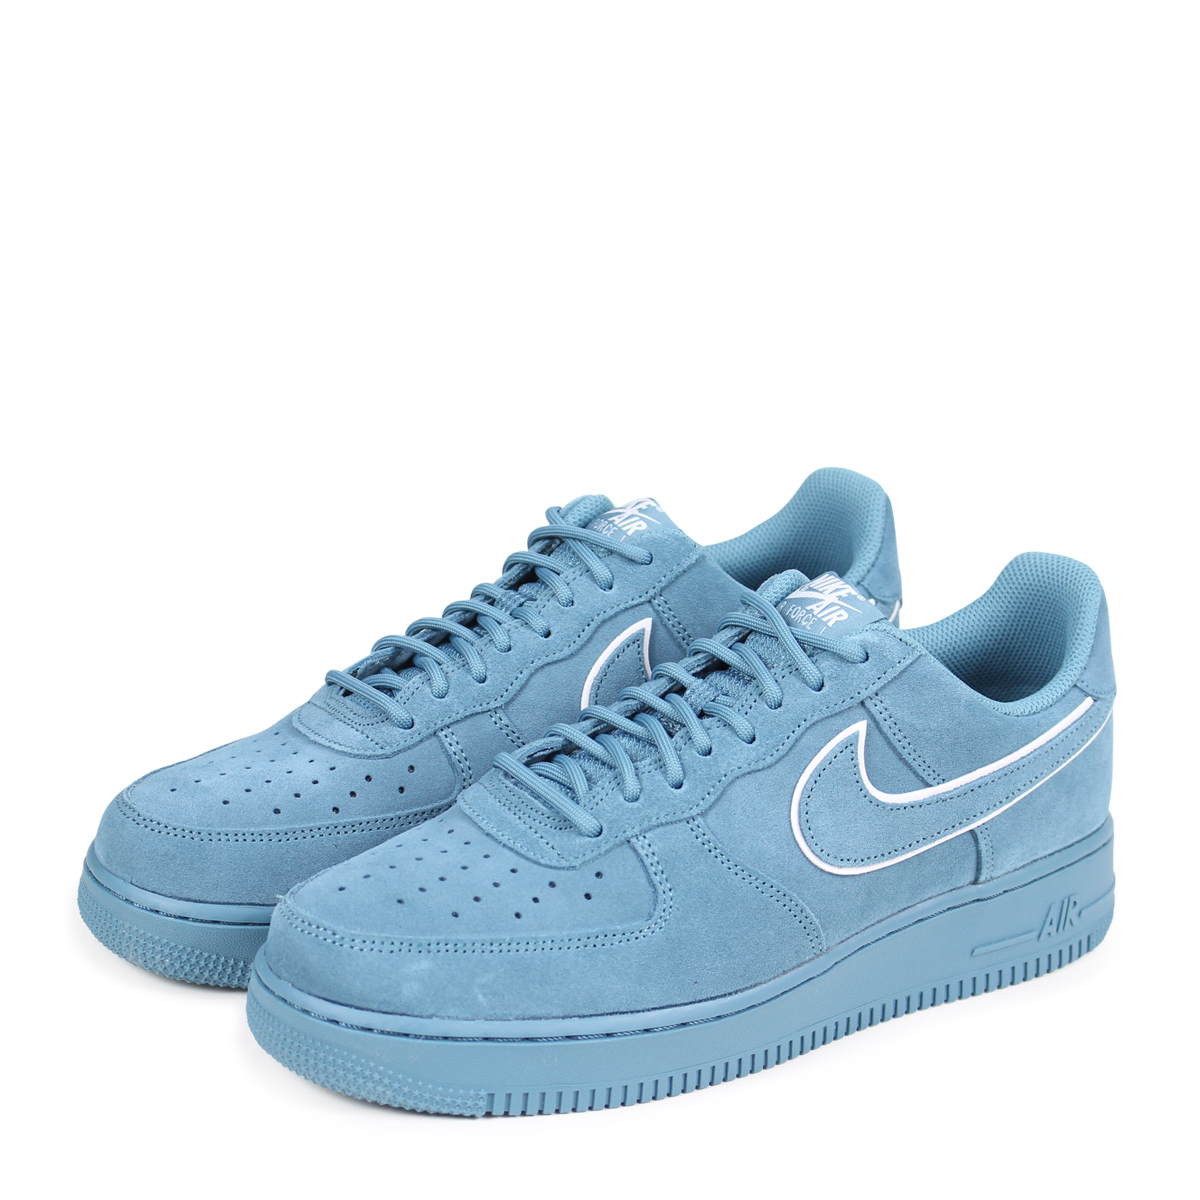 NIKE AIR FORCE 1 SUEDE Nike air force 1 07 LV8 sneakers men AA1117,400 blue  [load planned Shinnyu load in reservation product 3/30 containing] [183]